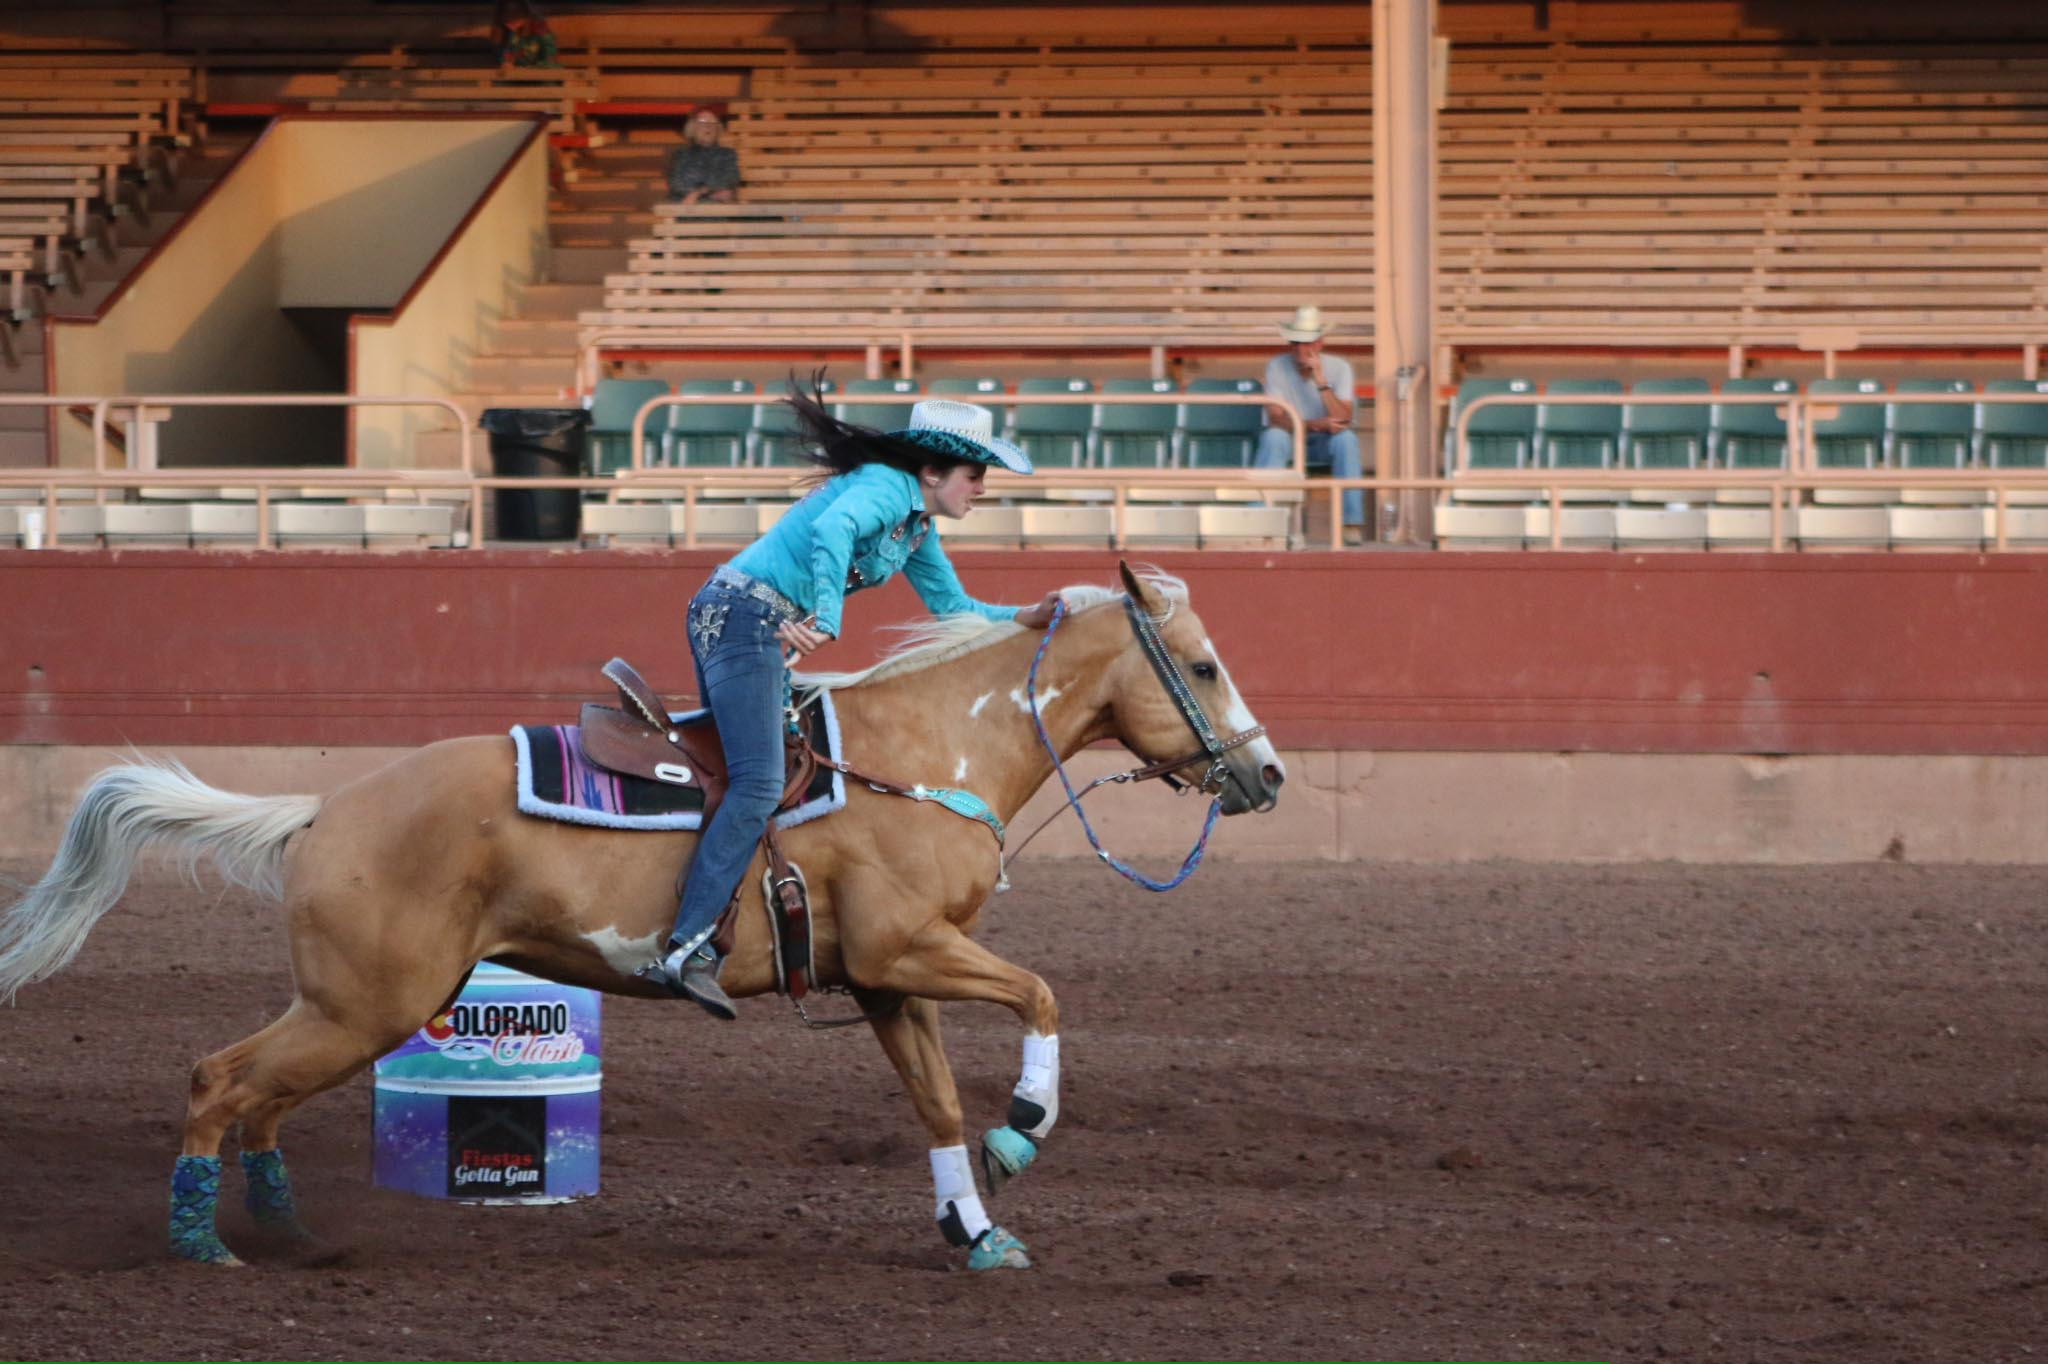 Jenna Petrohoy, Barrel Racing